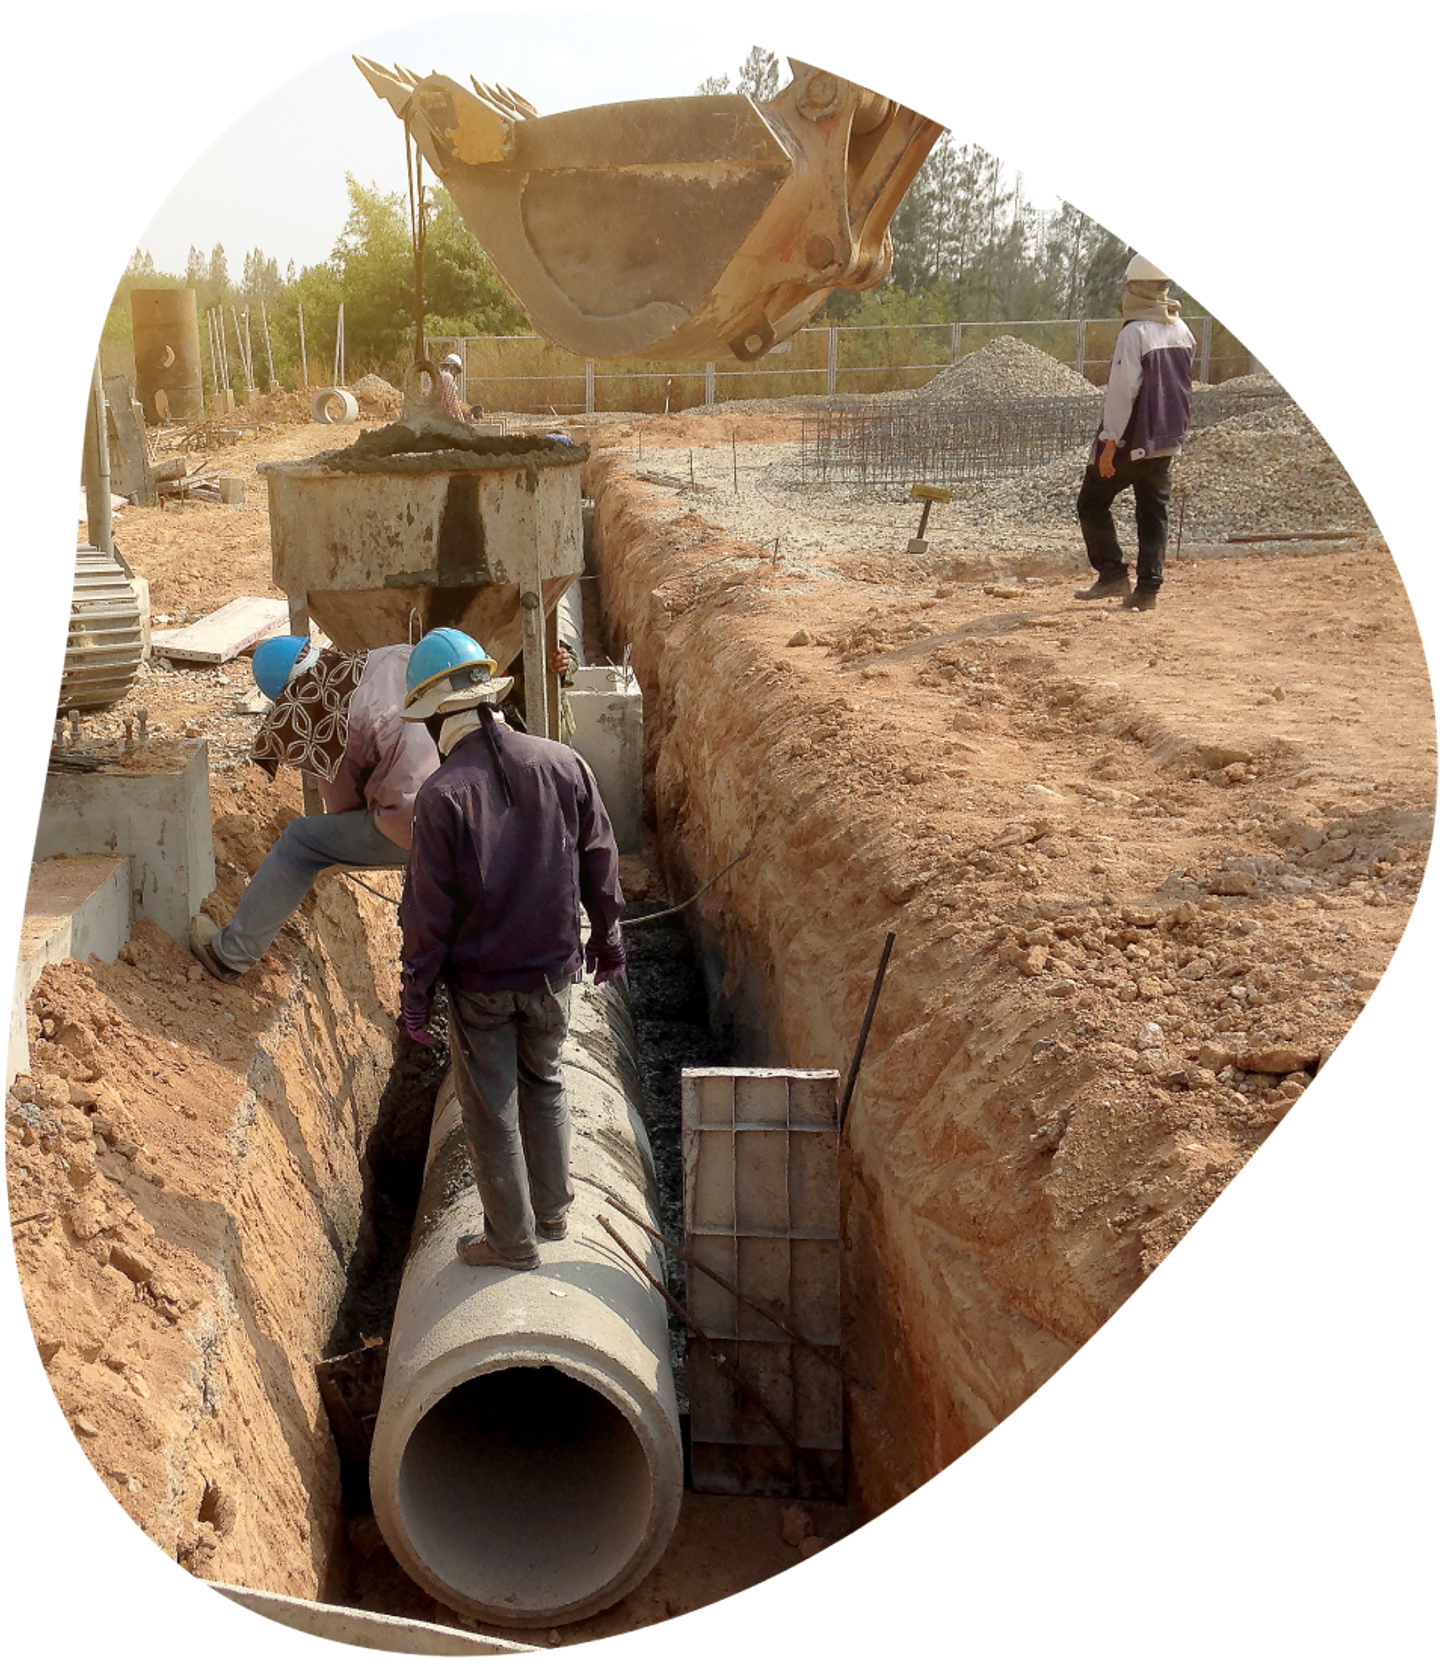 Workers standing on pipe in the road